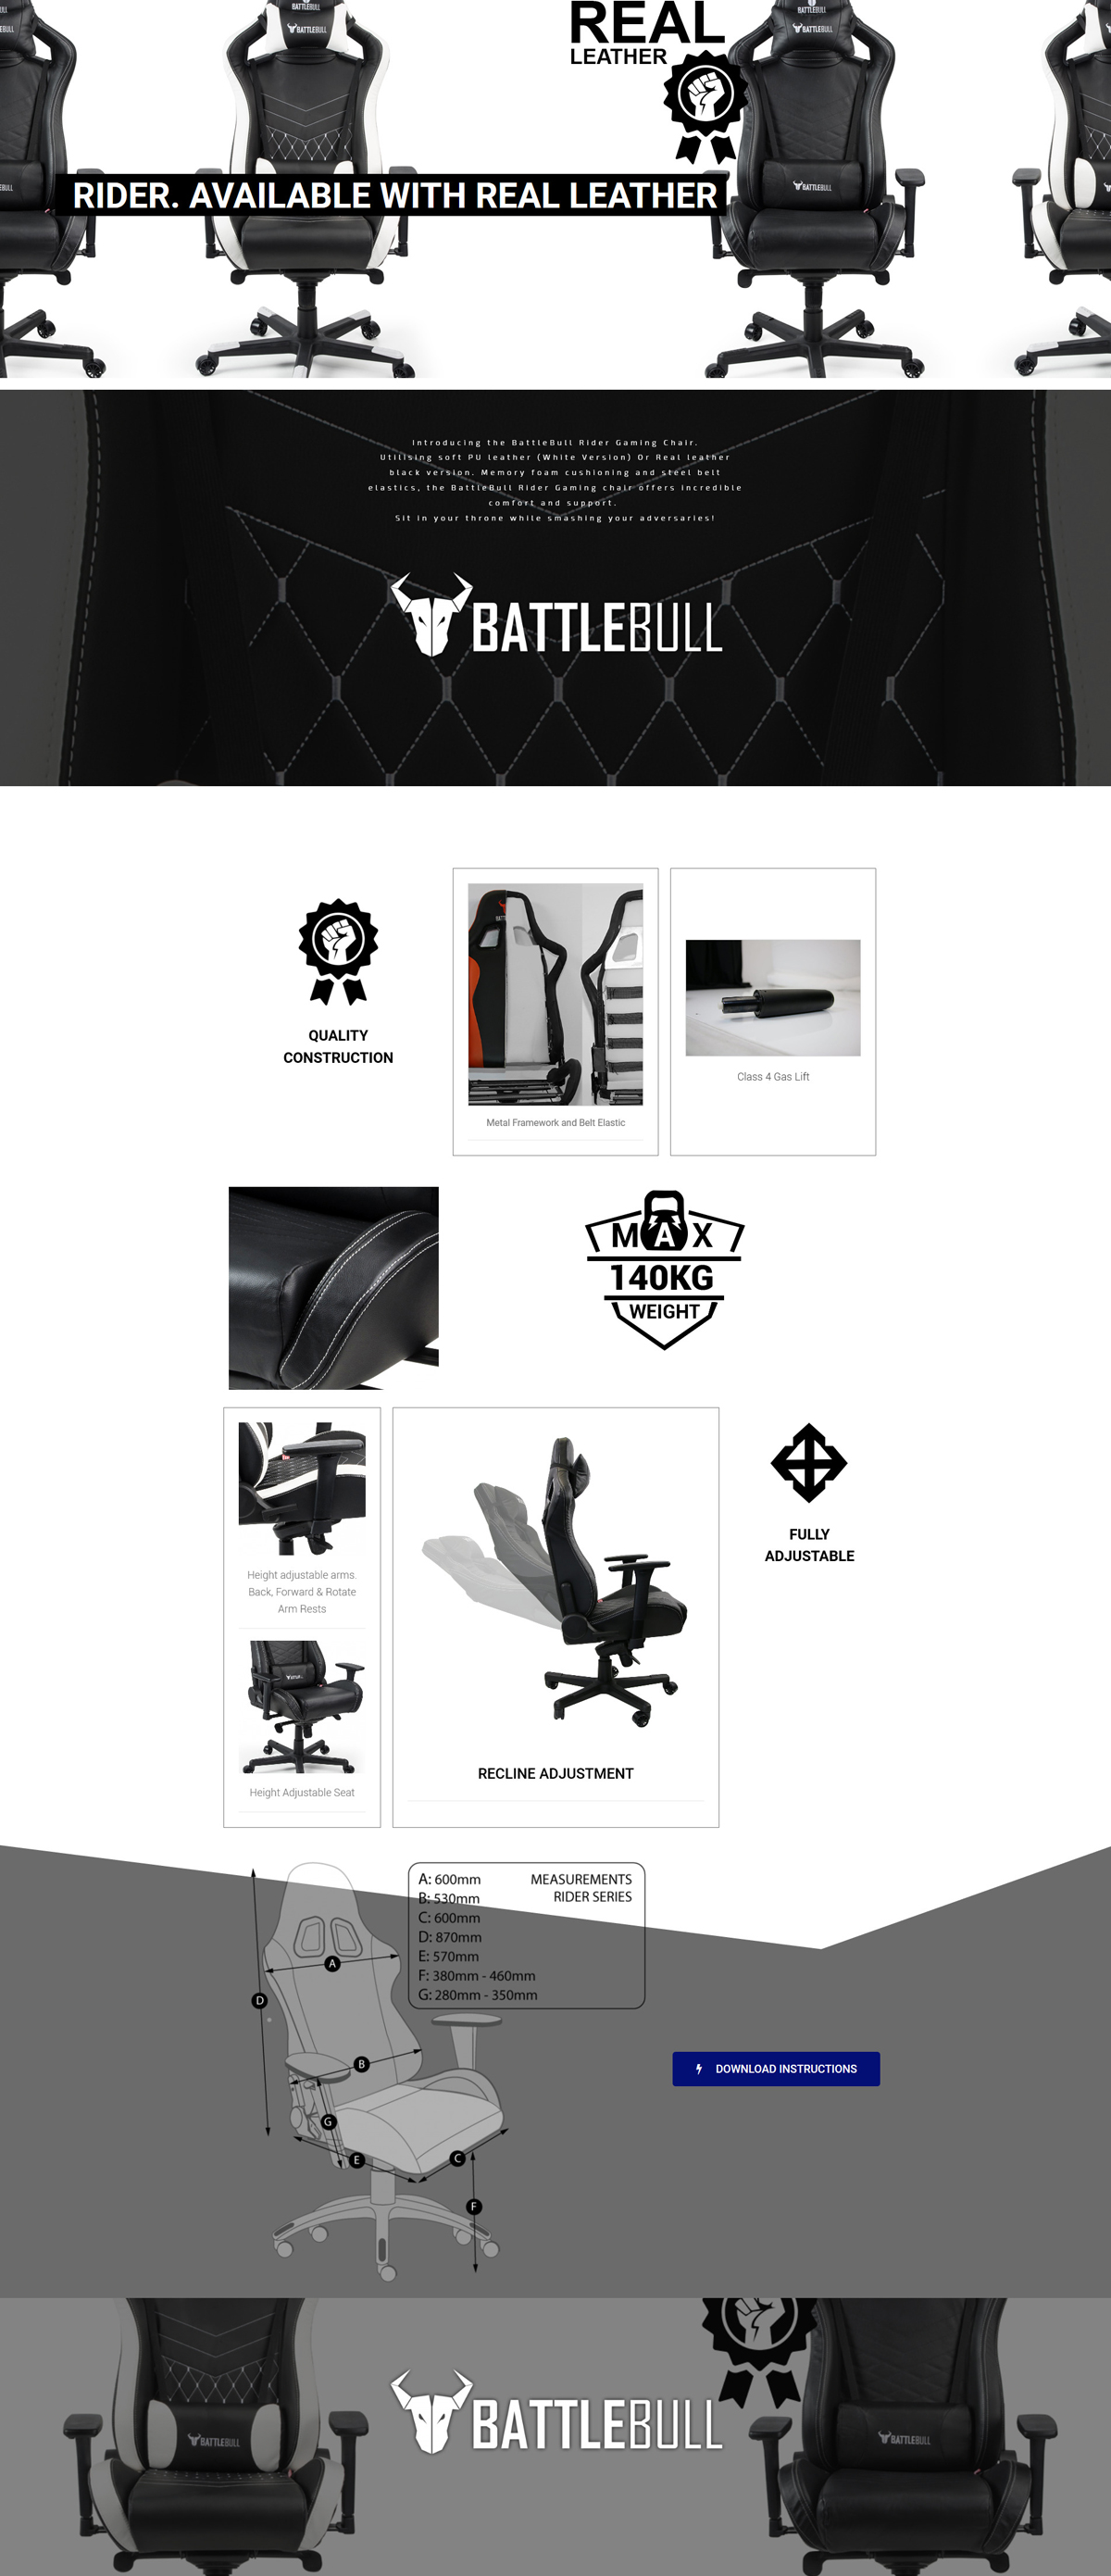 A large marketing image providing additional information about the product BattleBull Rider Gaming Chair Black Leather - Additional alt info not provided